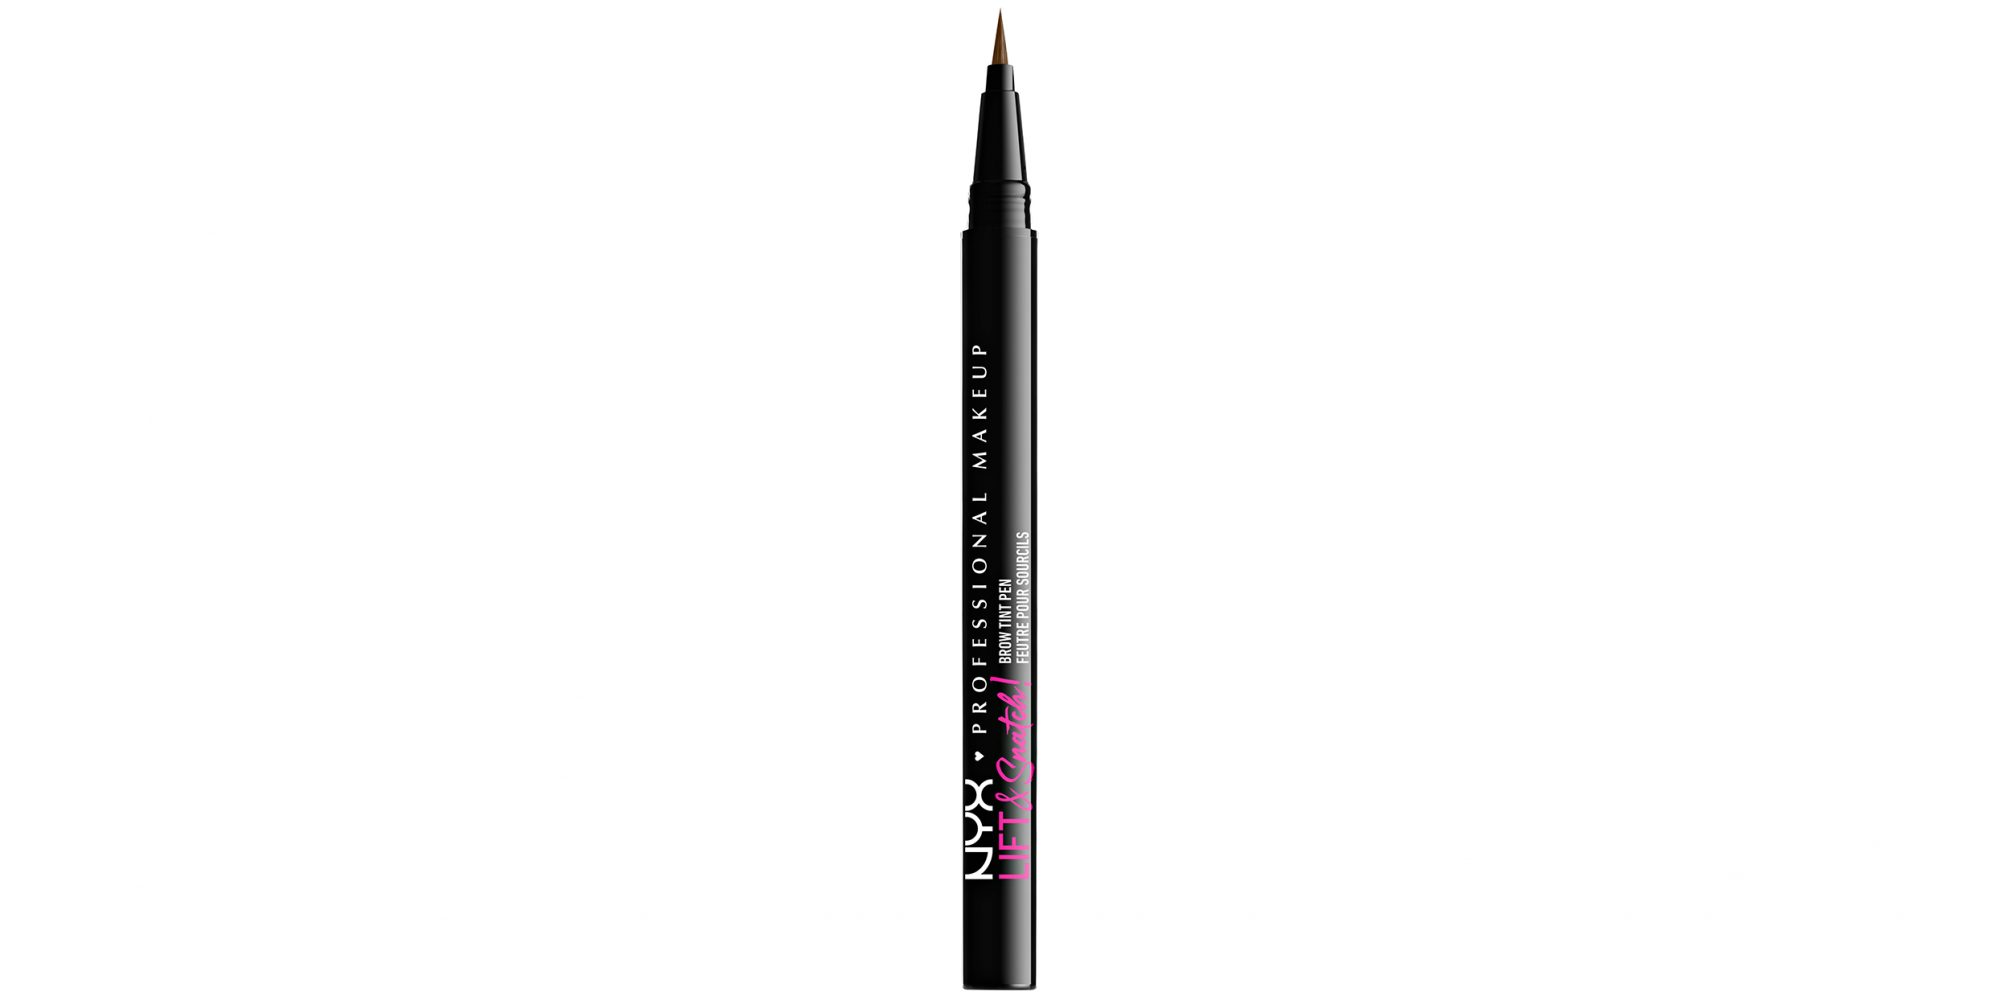 NYX Professional Makeup Lift and Snatch! Brow Tint Pen